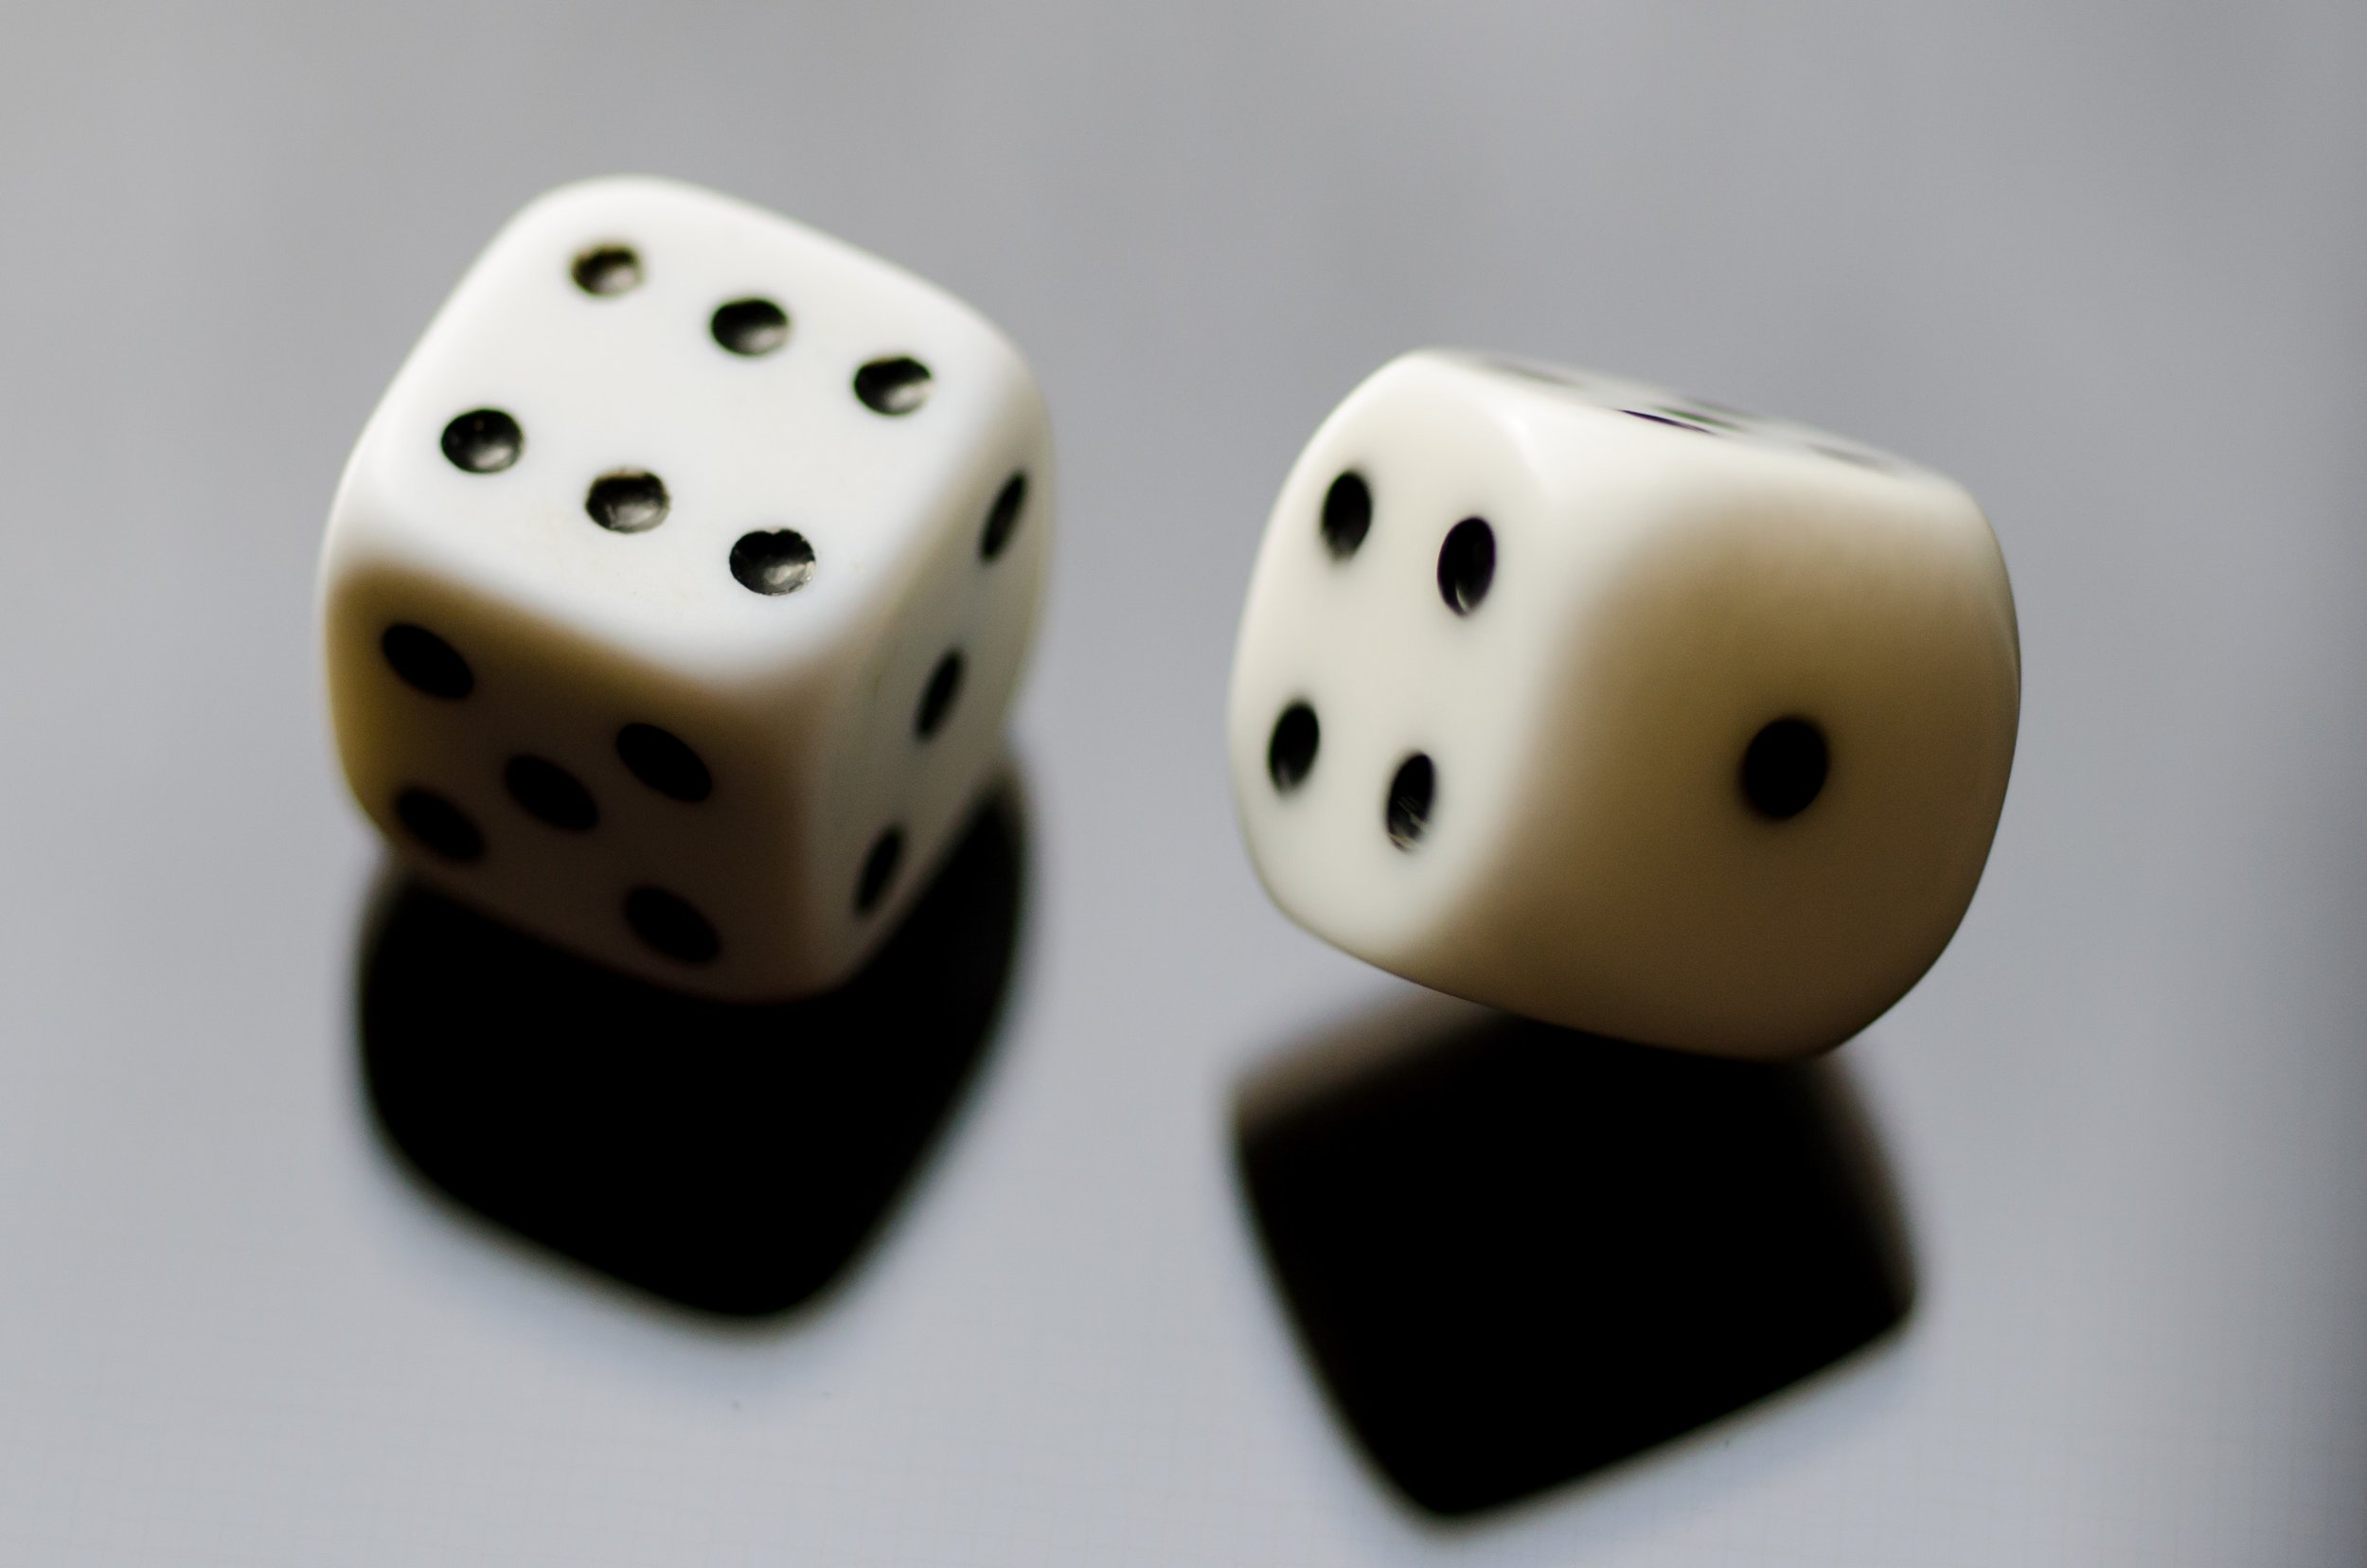 He Didn't Get to Vote in His Race. It Tied, Then He Lost by a Roll of the Dice. - Two candidates for City Council in Hoxie, Ark., the challenger Cliff Farmer and the incumbent Becky Linebaugh, each rolled a die in the tiebreaker on Thursday for their runoff election.